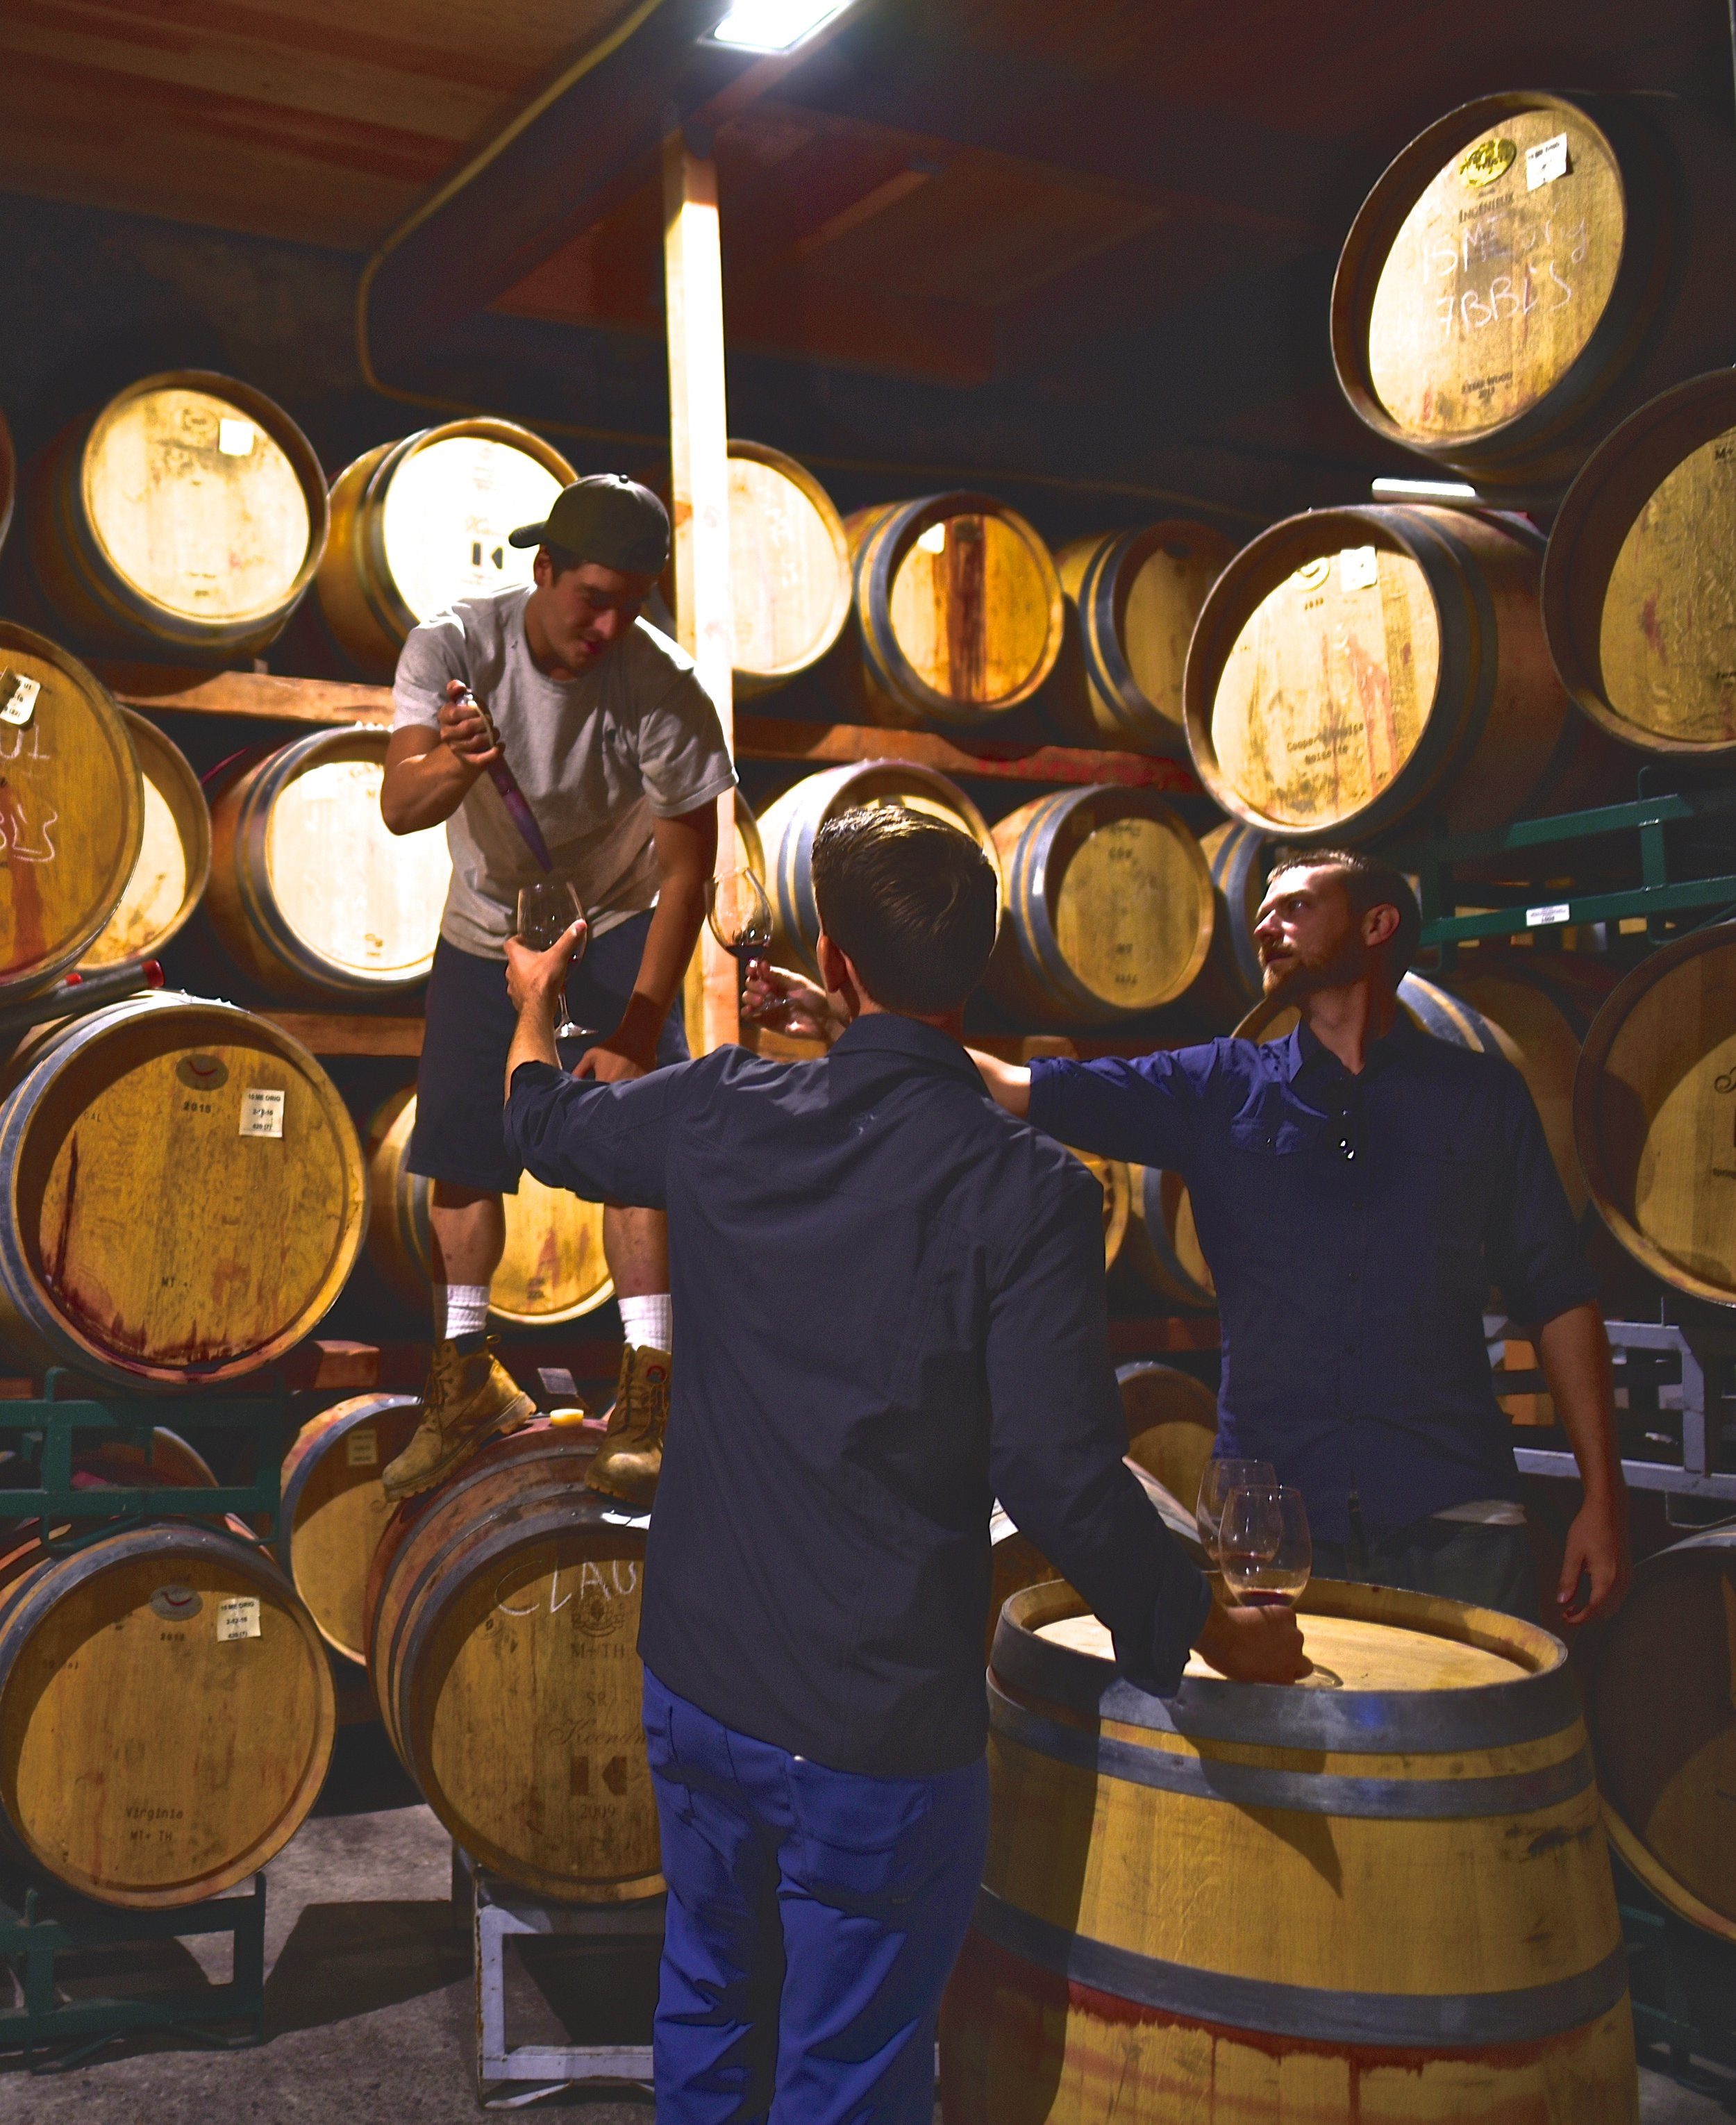 Tasting directly from the barrels